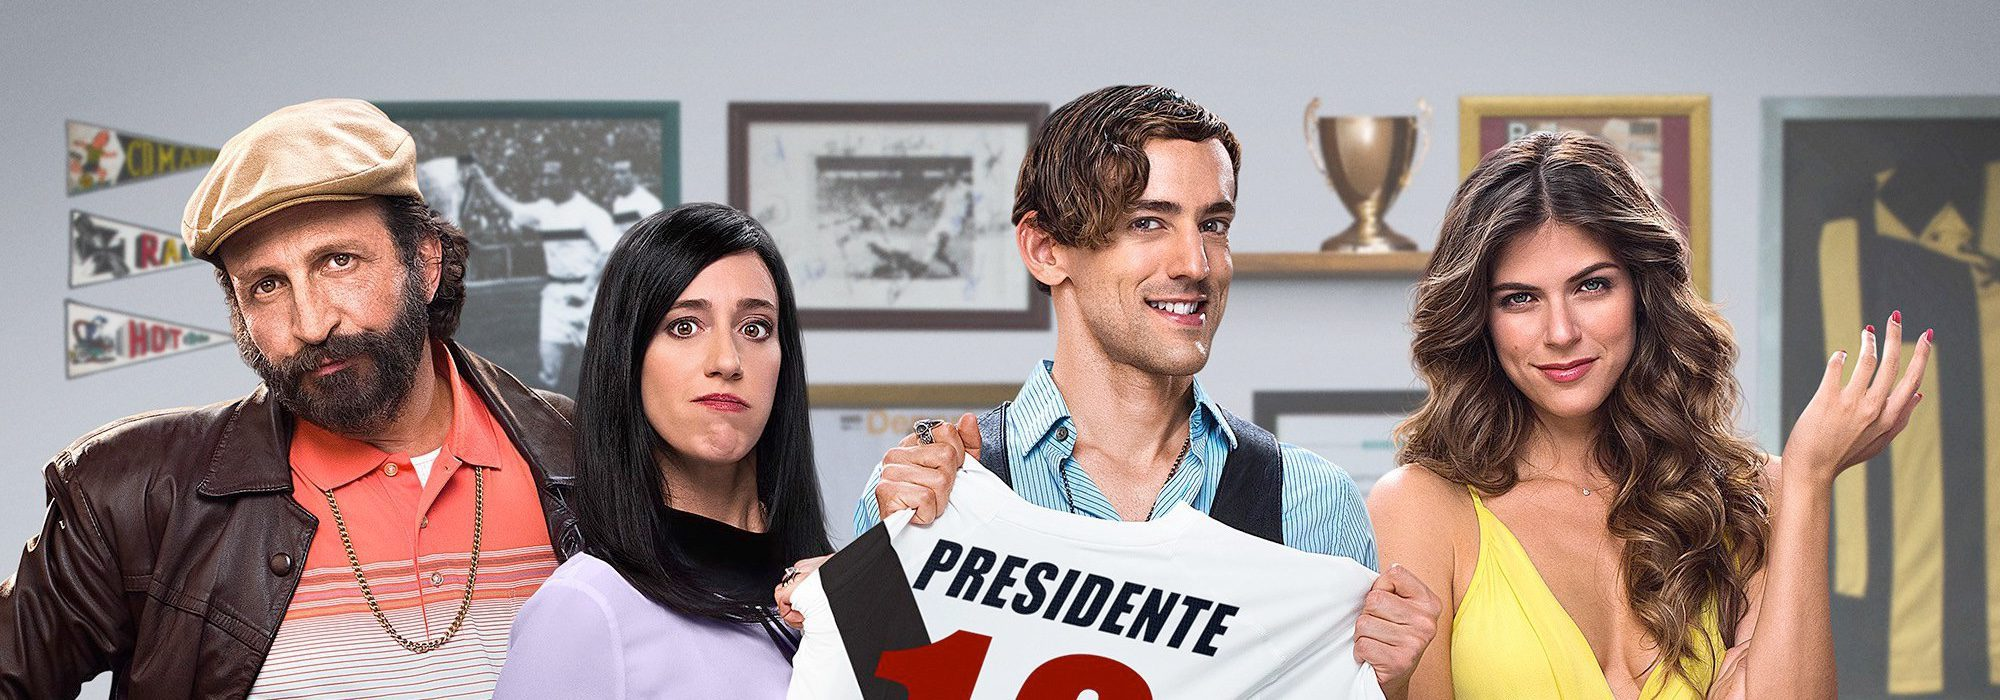 « Club de Cuervos », le Dallas foot à la sauce mexicaine 🇲🇽